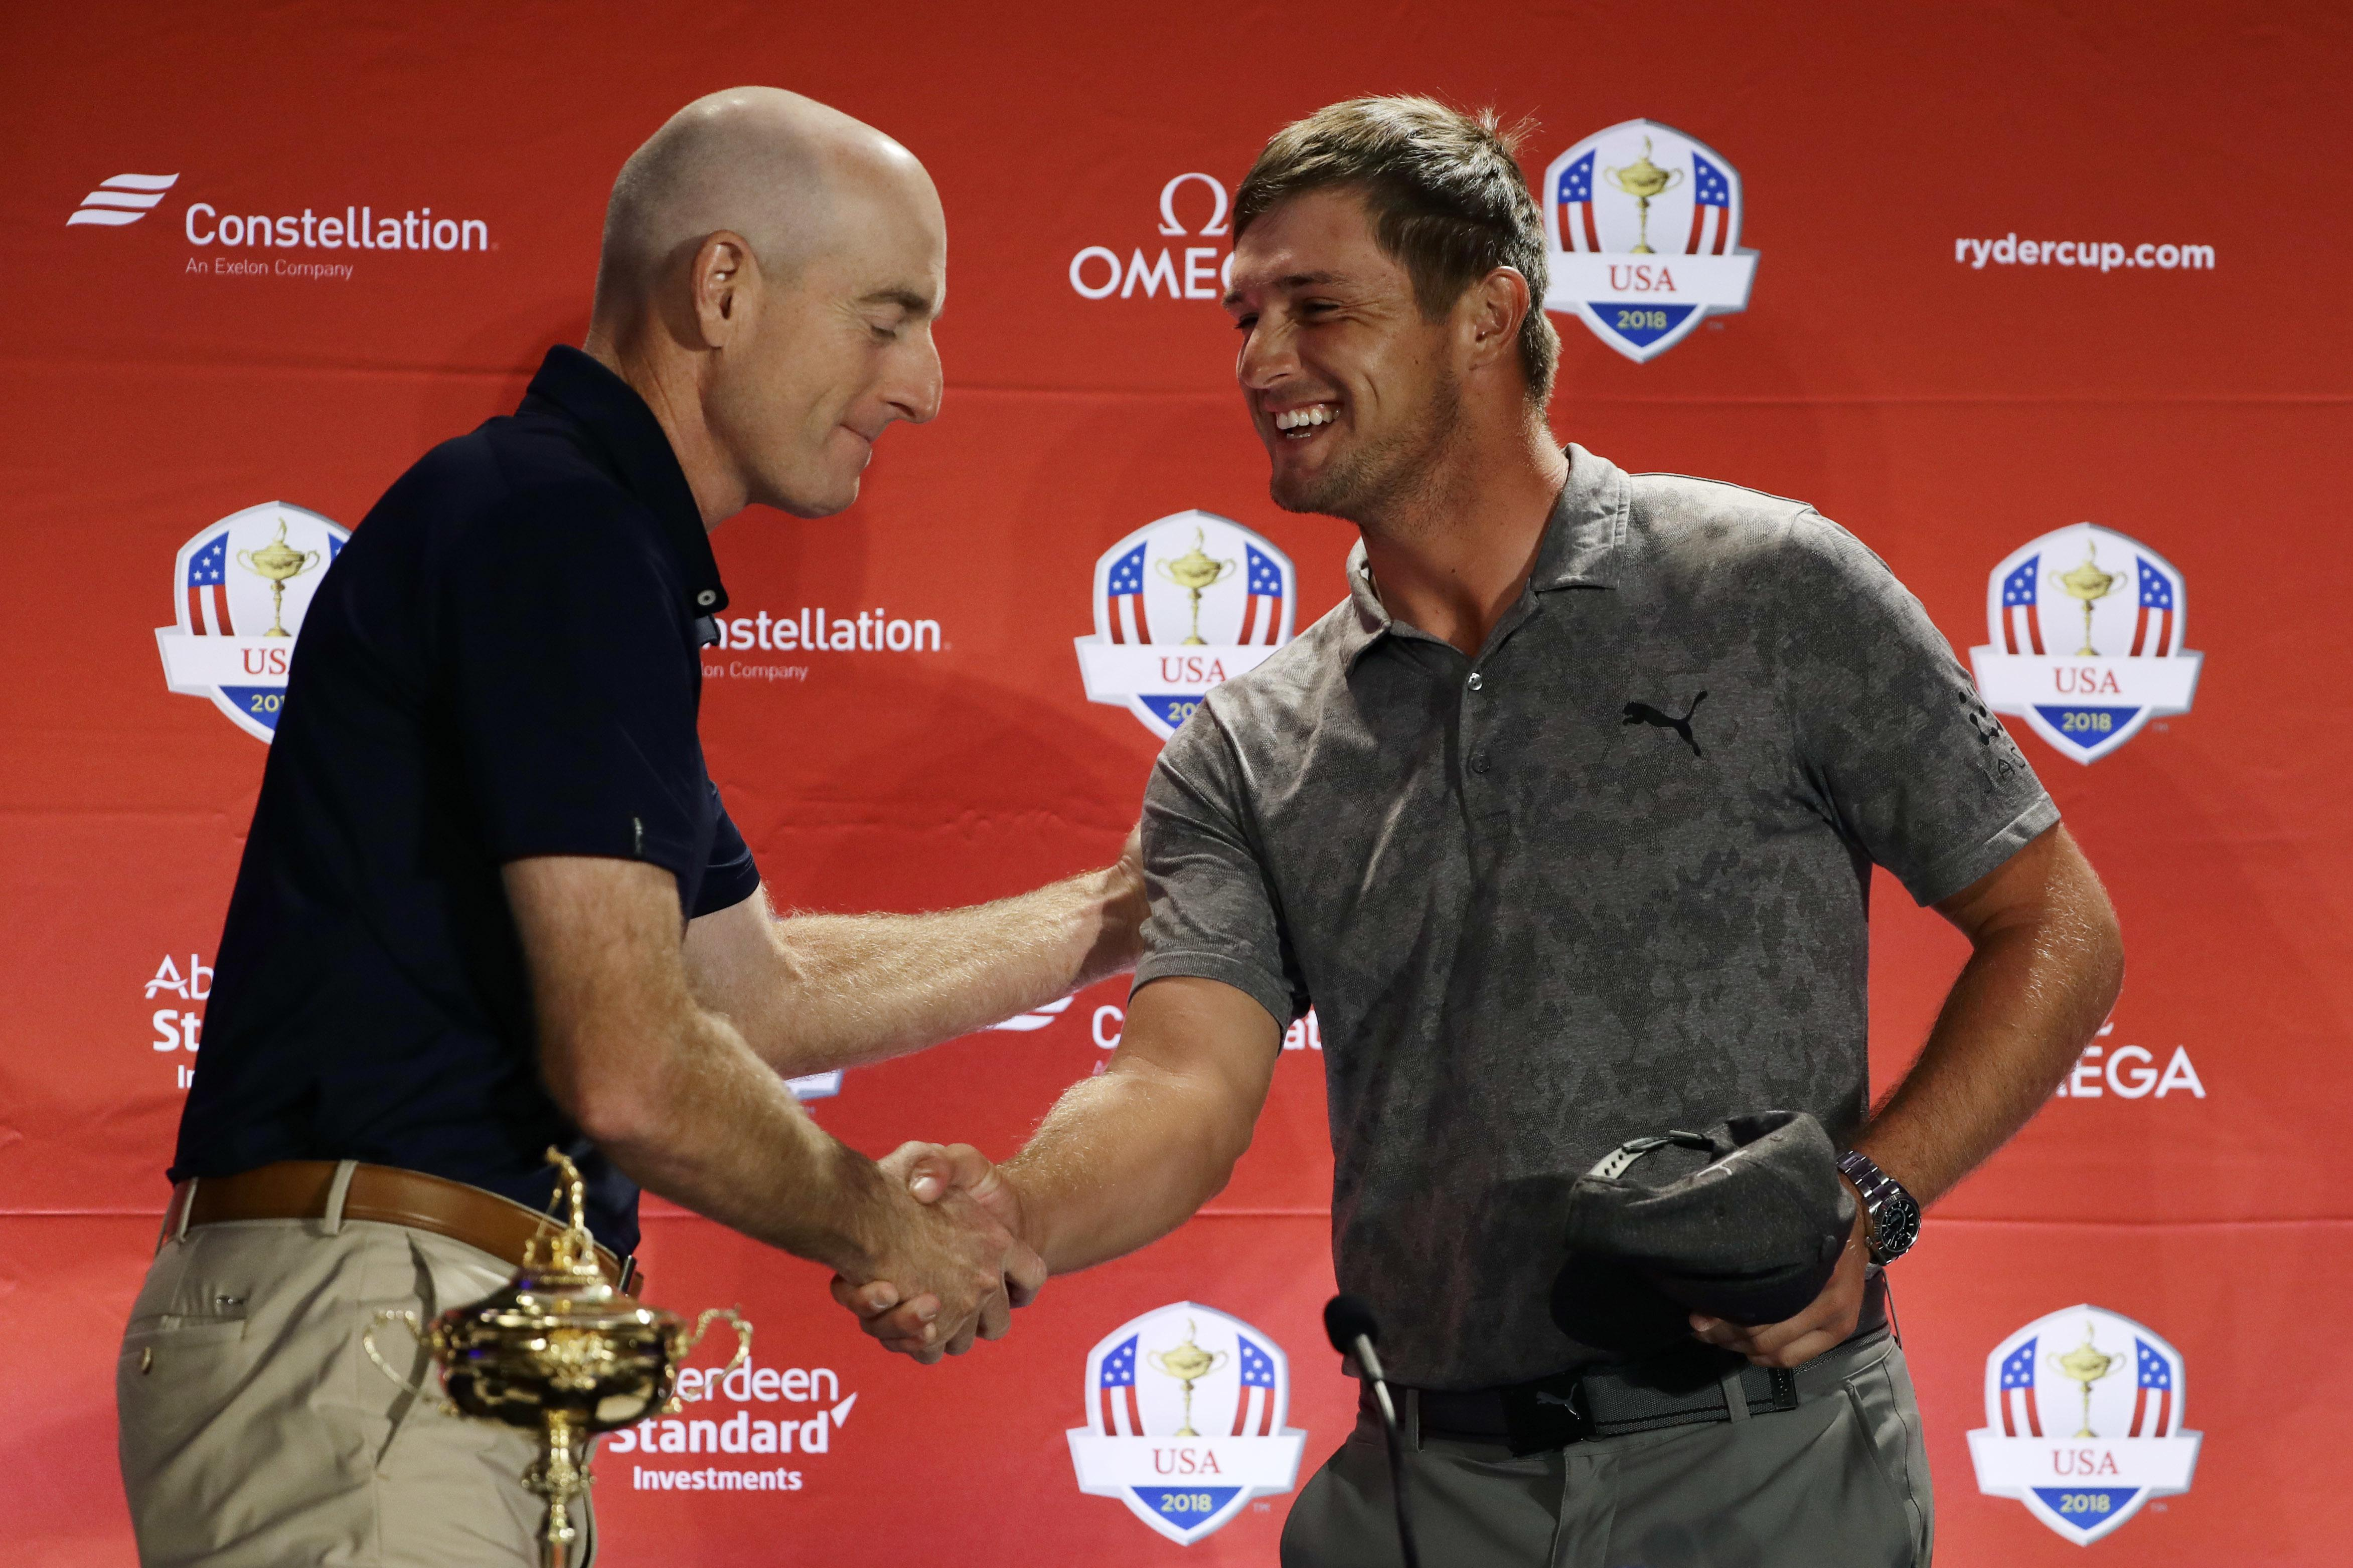 Furyk congratulates DeChambeau on his pick